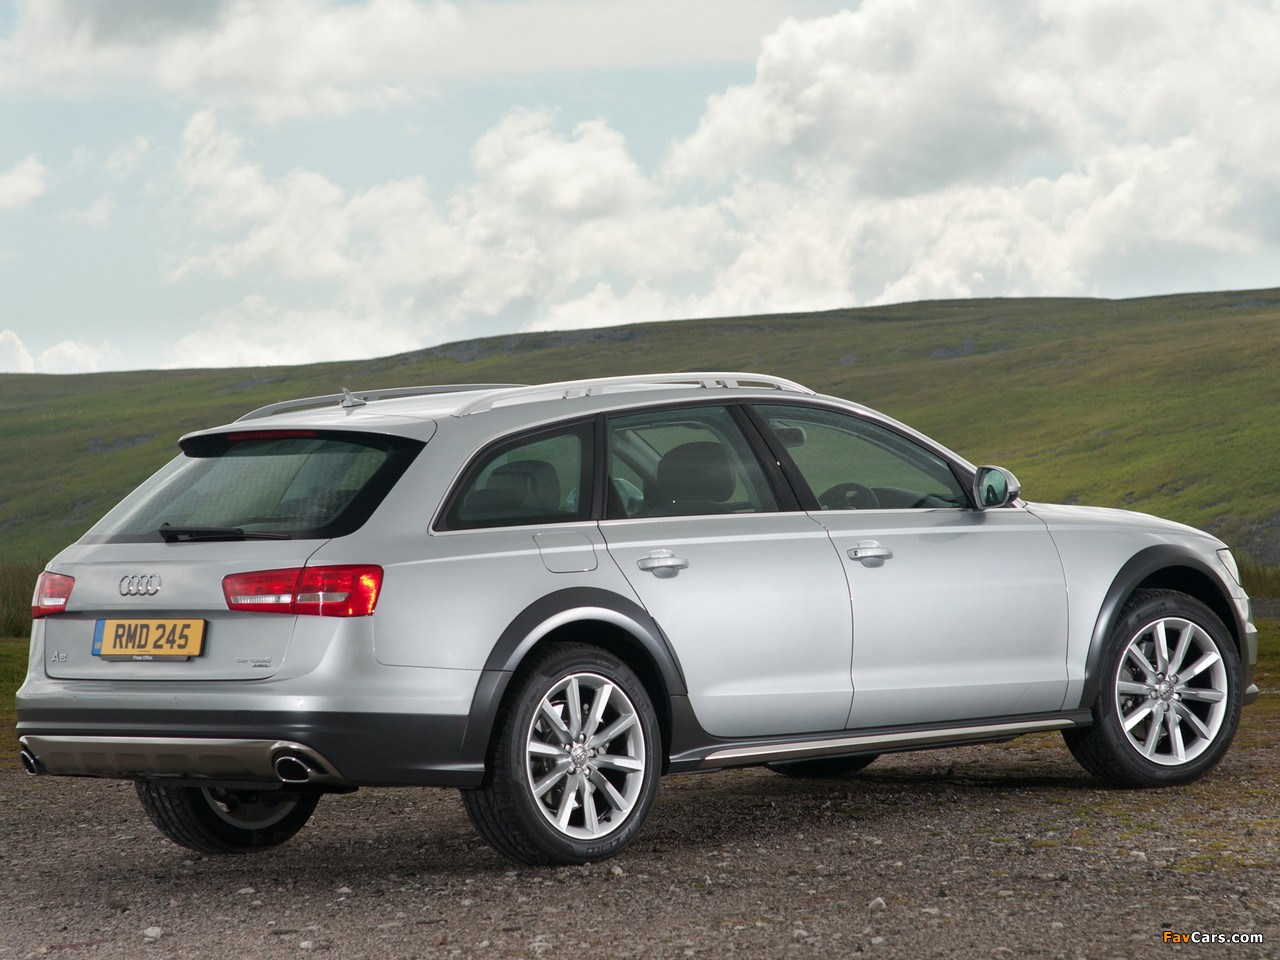 Pictures Of Audi A6 Allroad 3 0 Tdi Quattro Uk Spec 4g C7 2012 1280x960